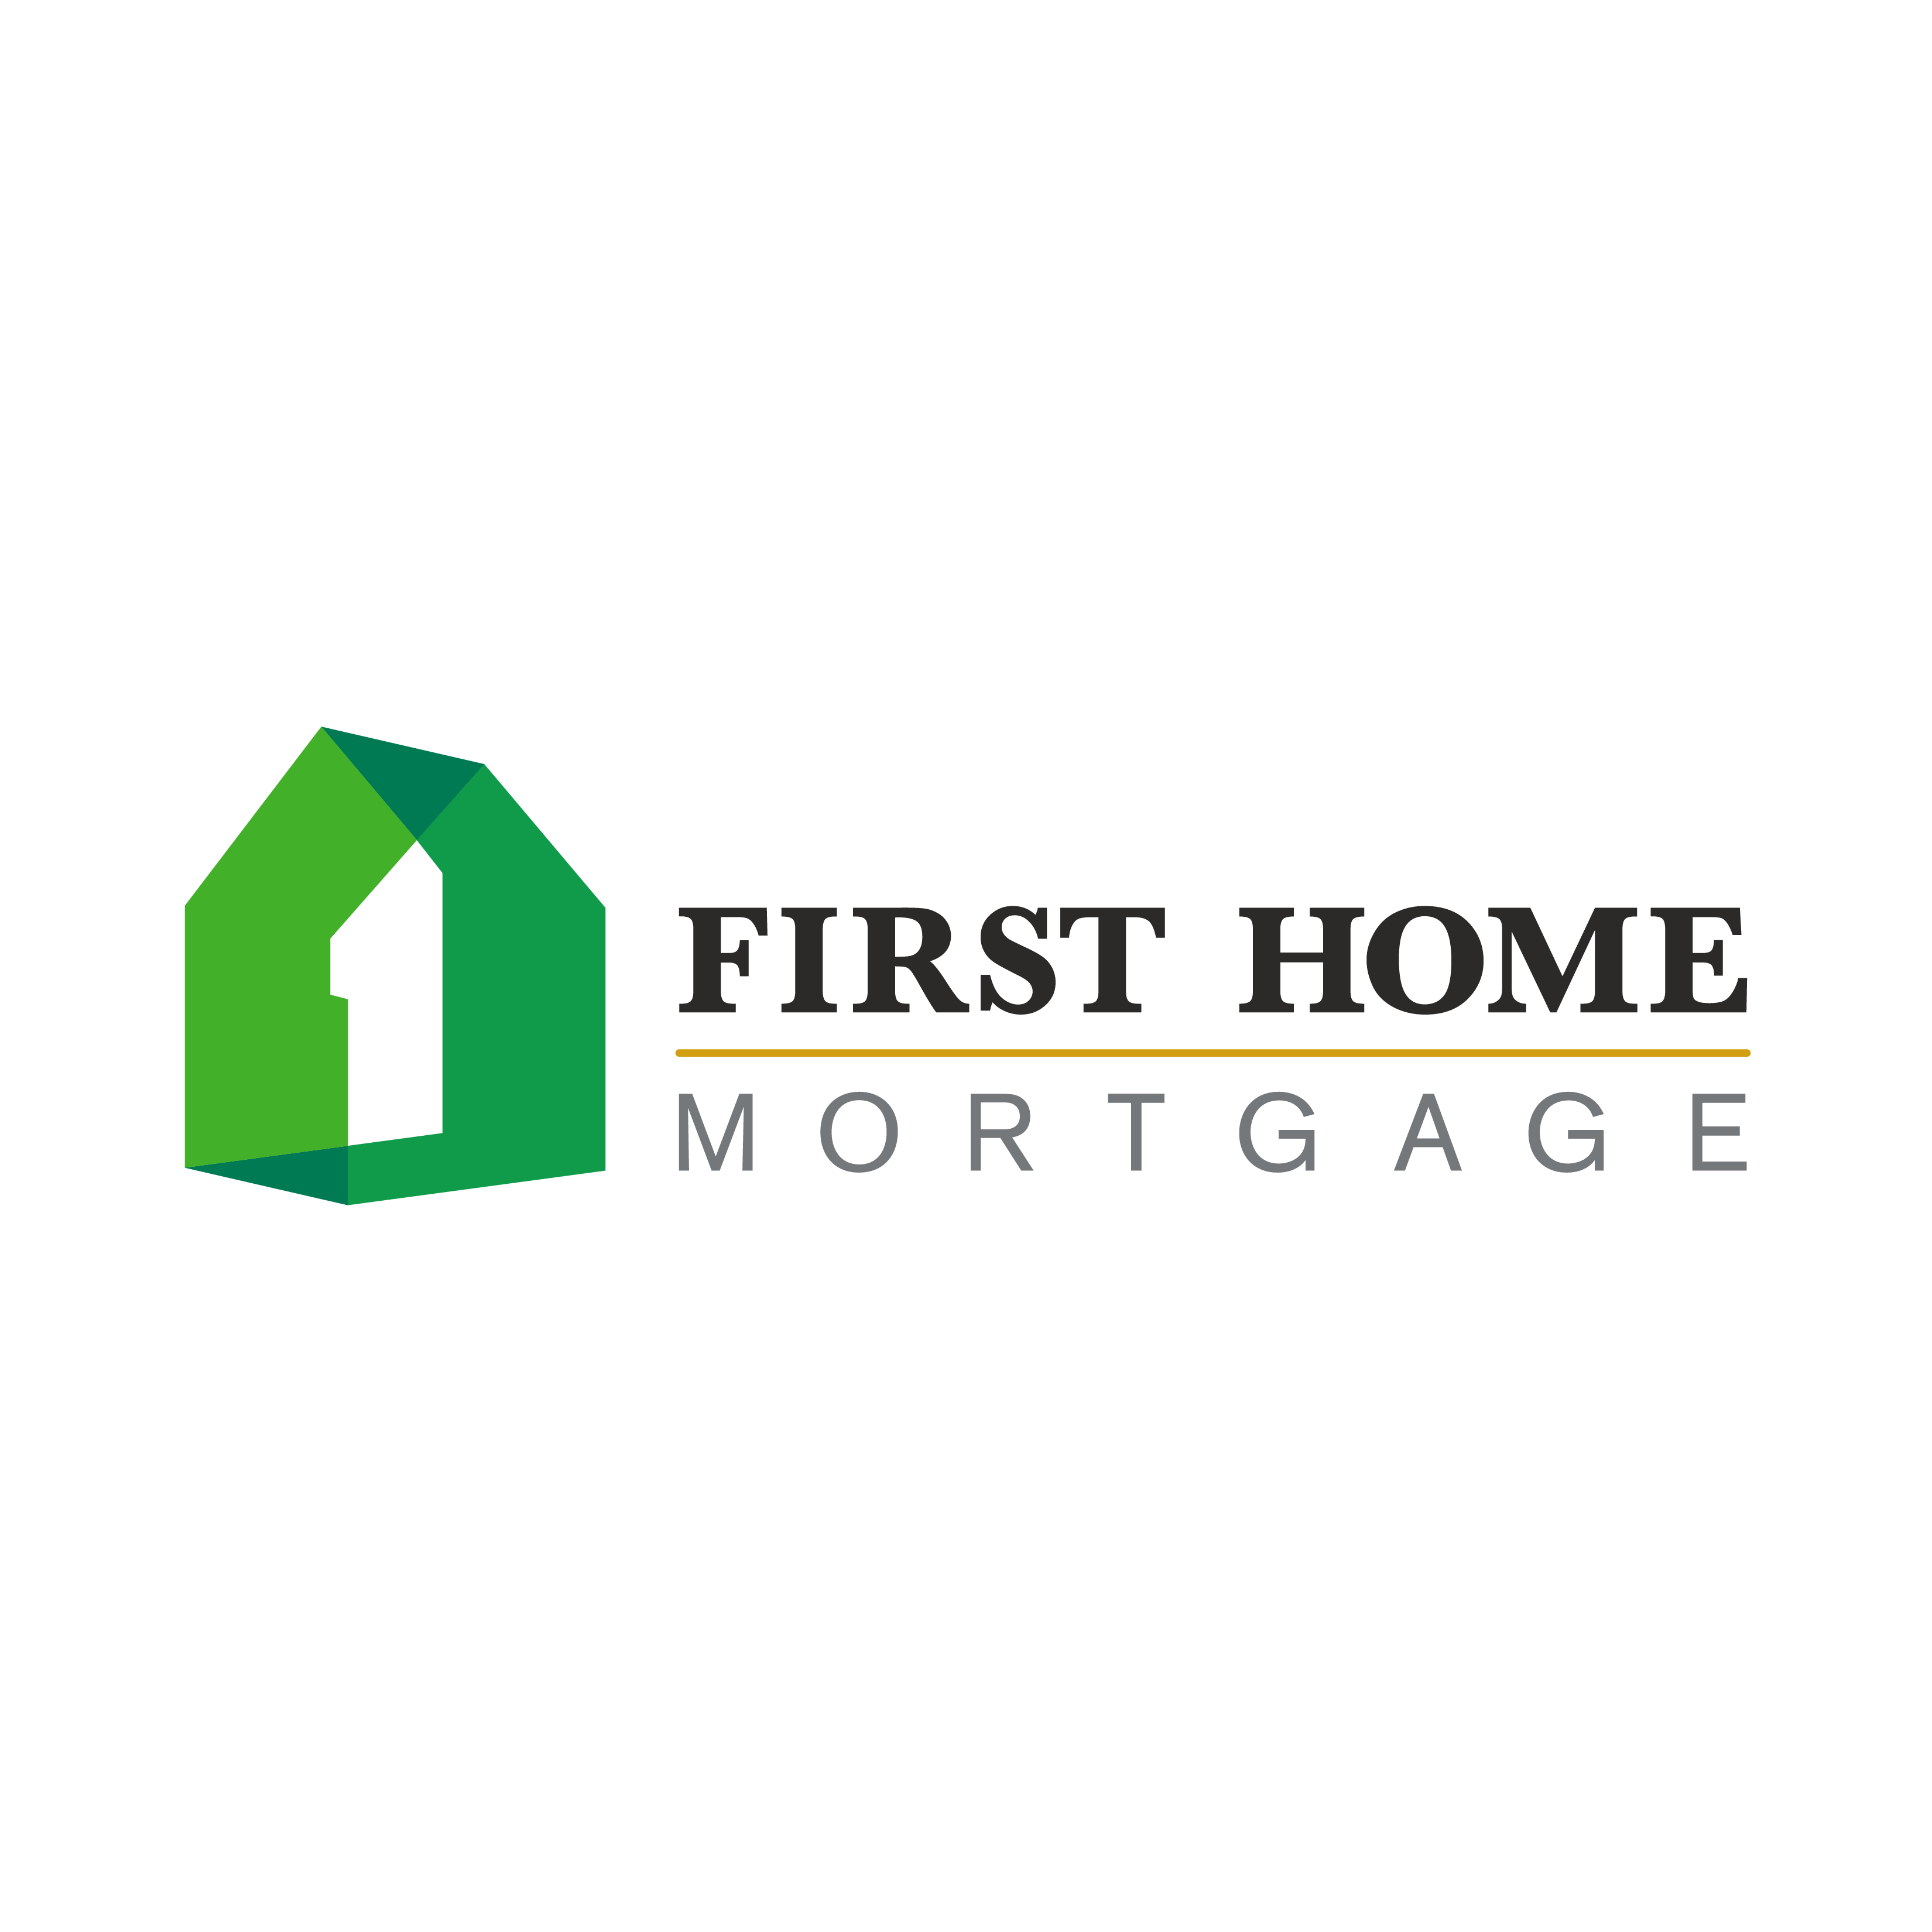 Jeffrey Halbert - First Home Mortgage image 2